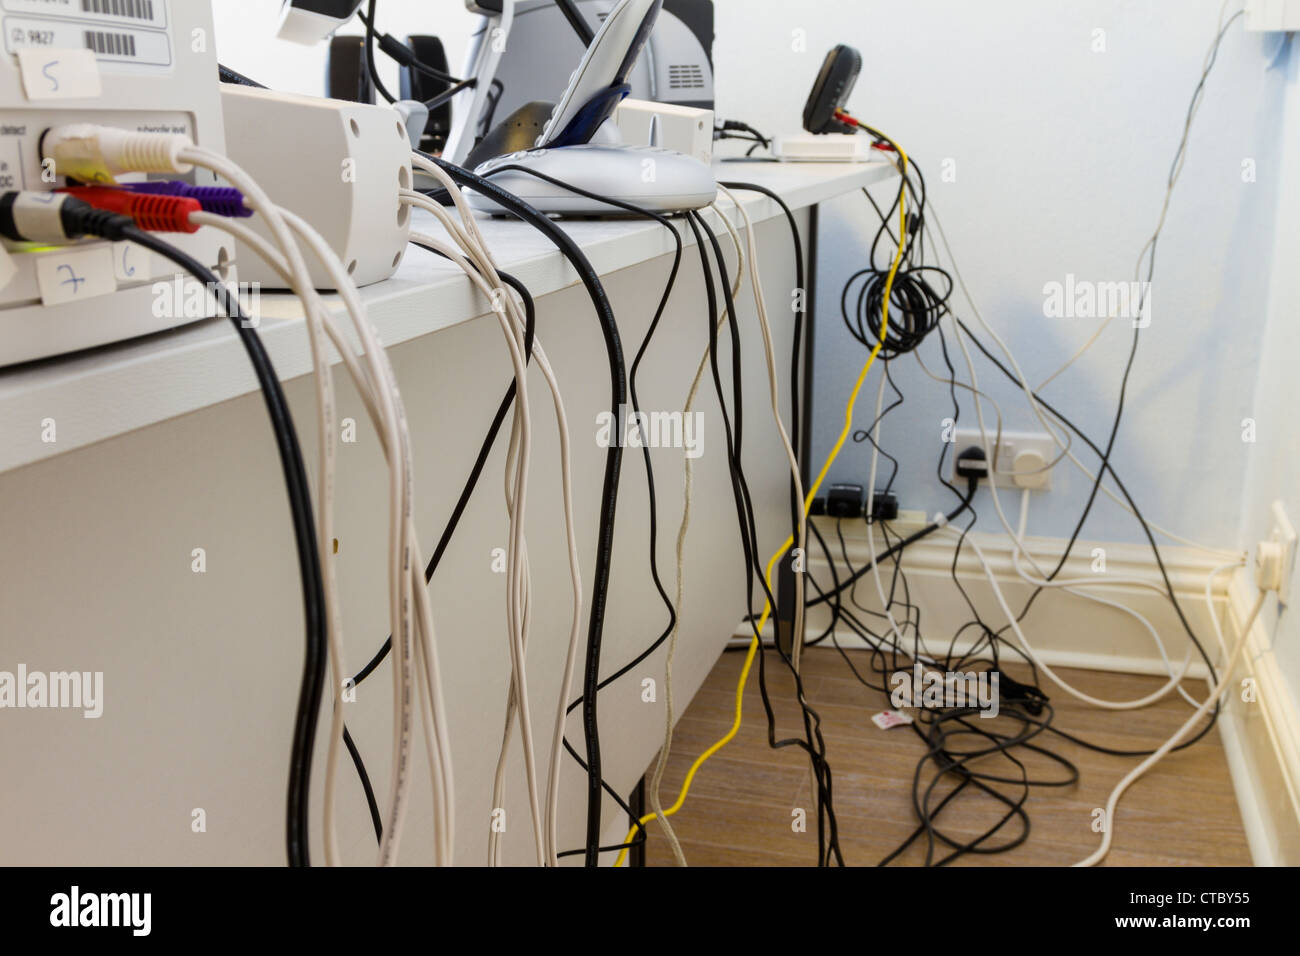 untidy office cables and wires - stock image